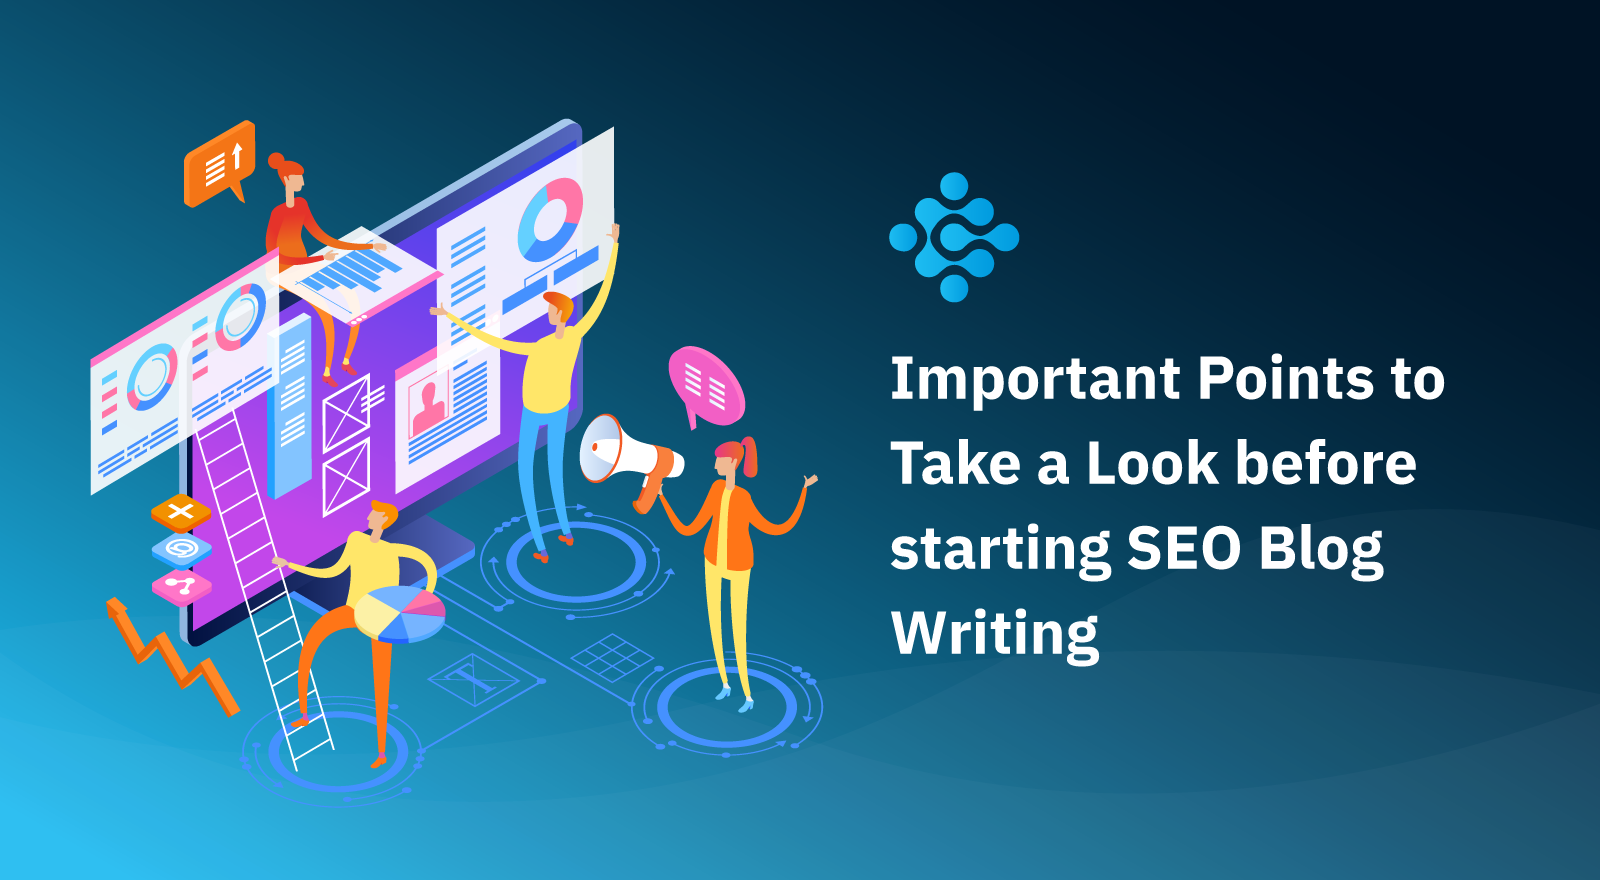 Important-Points-to-Take-a-Look-before-starting-SEO-Blog-Writing